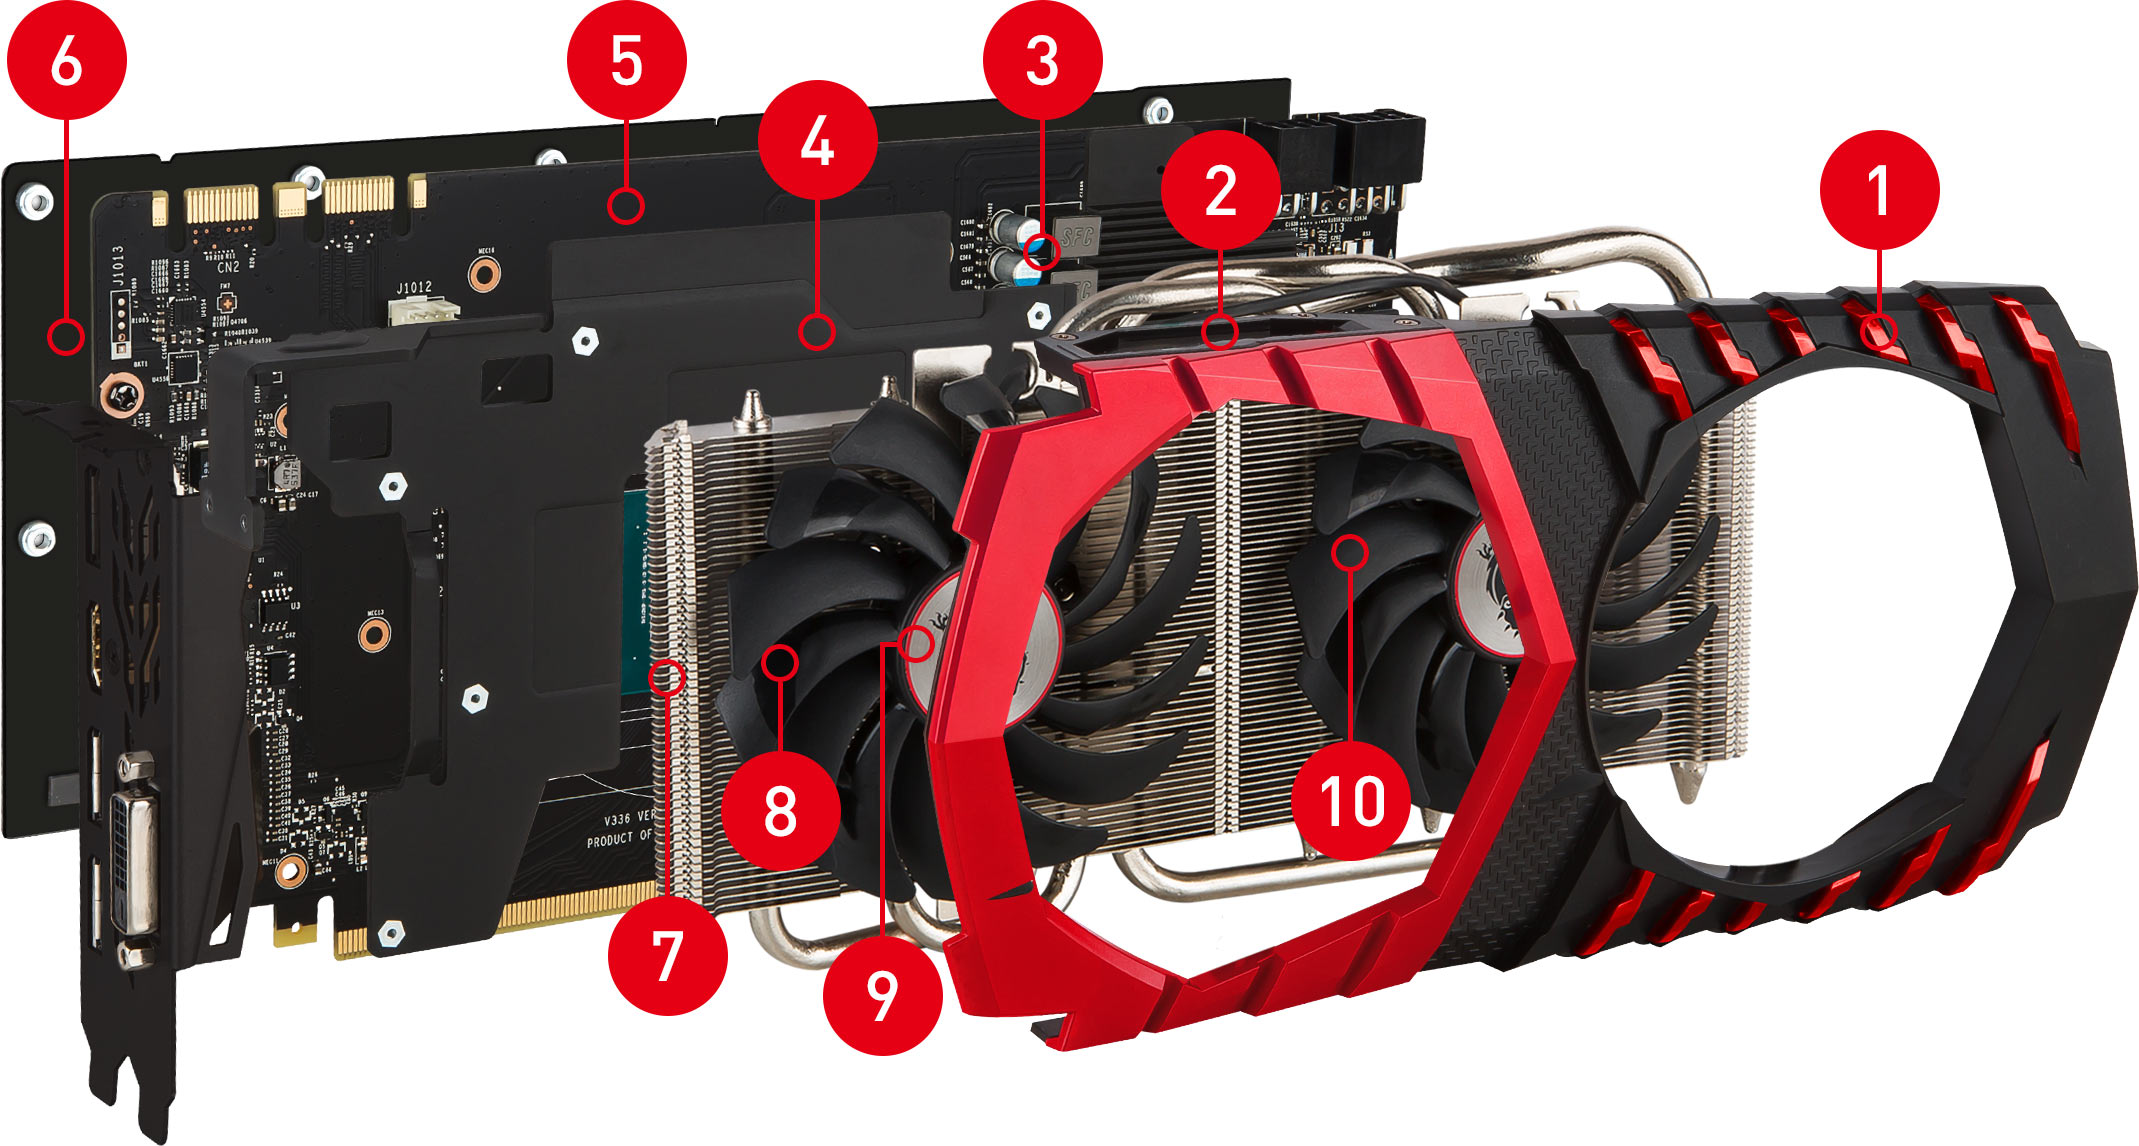 GTX 1070 GAMING X 8G exploded view